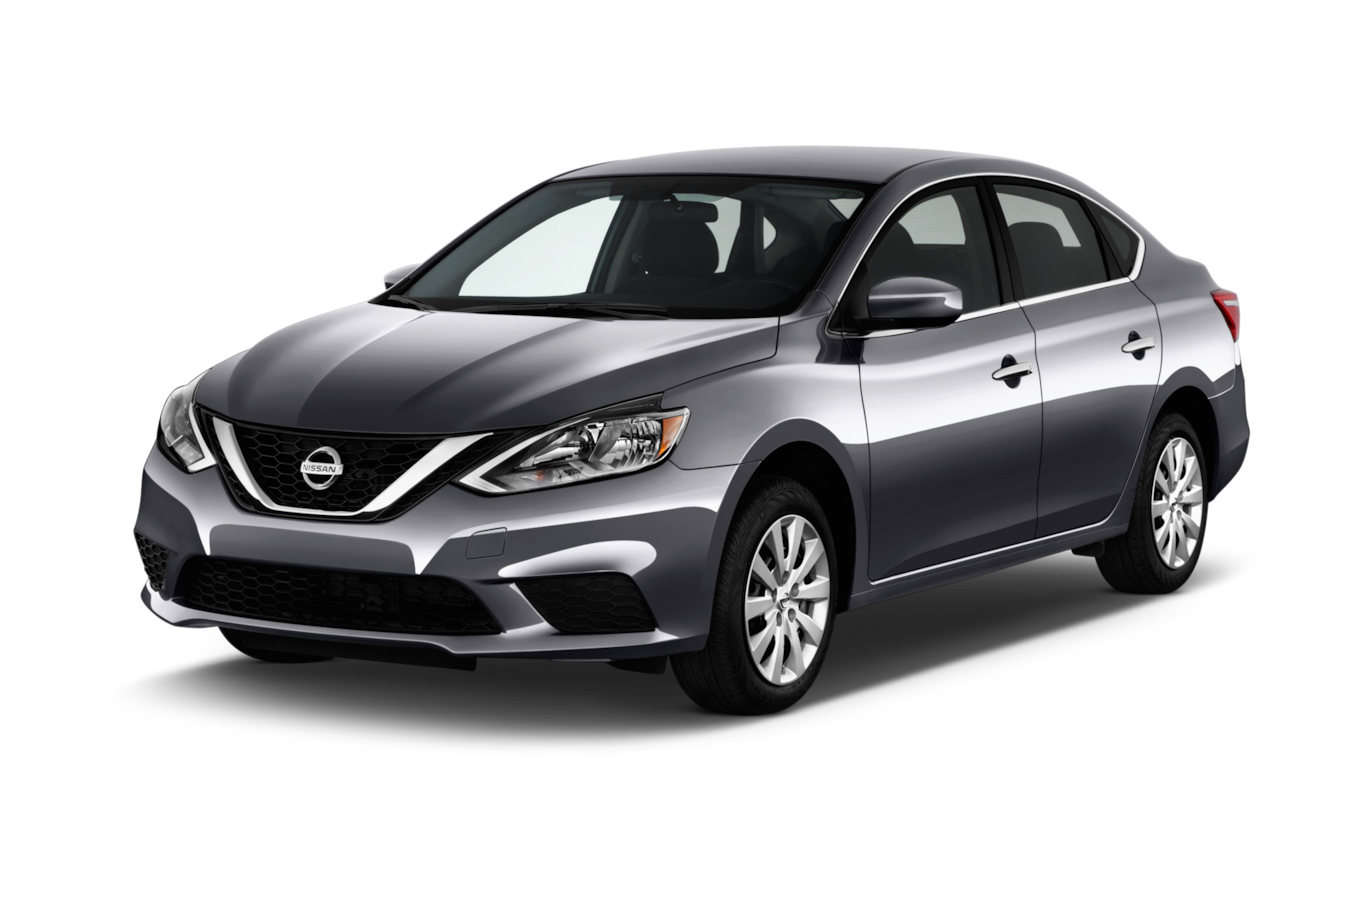 99 Best Review 2020 Nissan Altima Black Interior for 2020 Nissan Altima Black